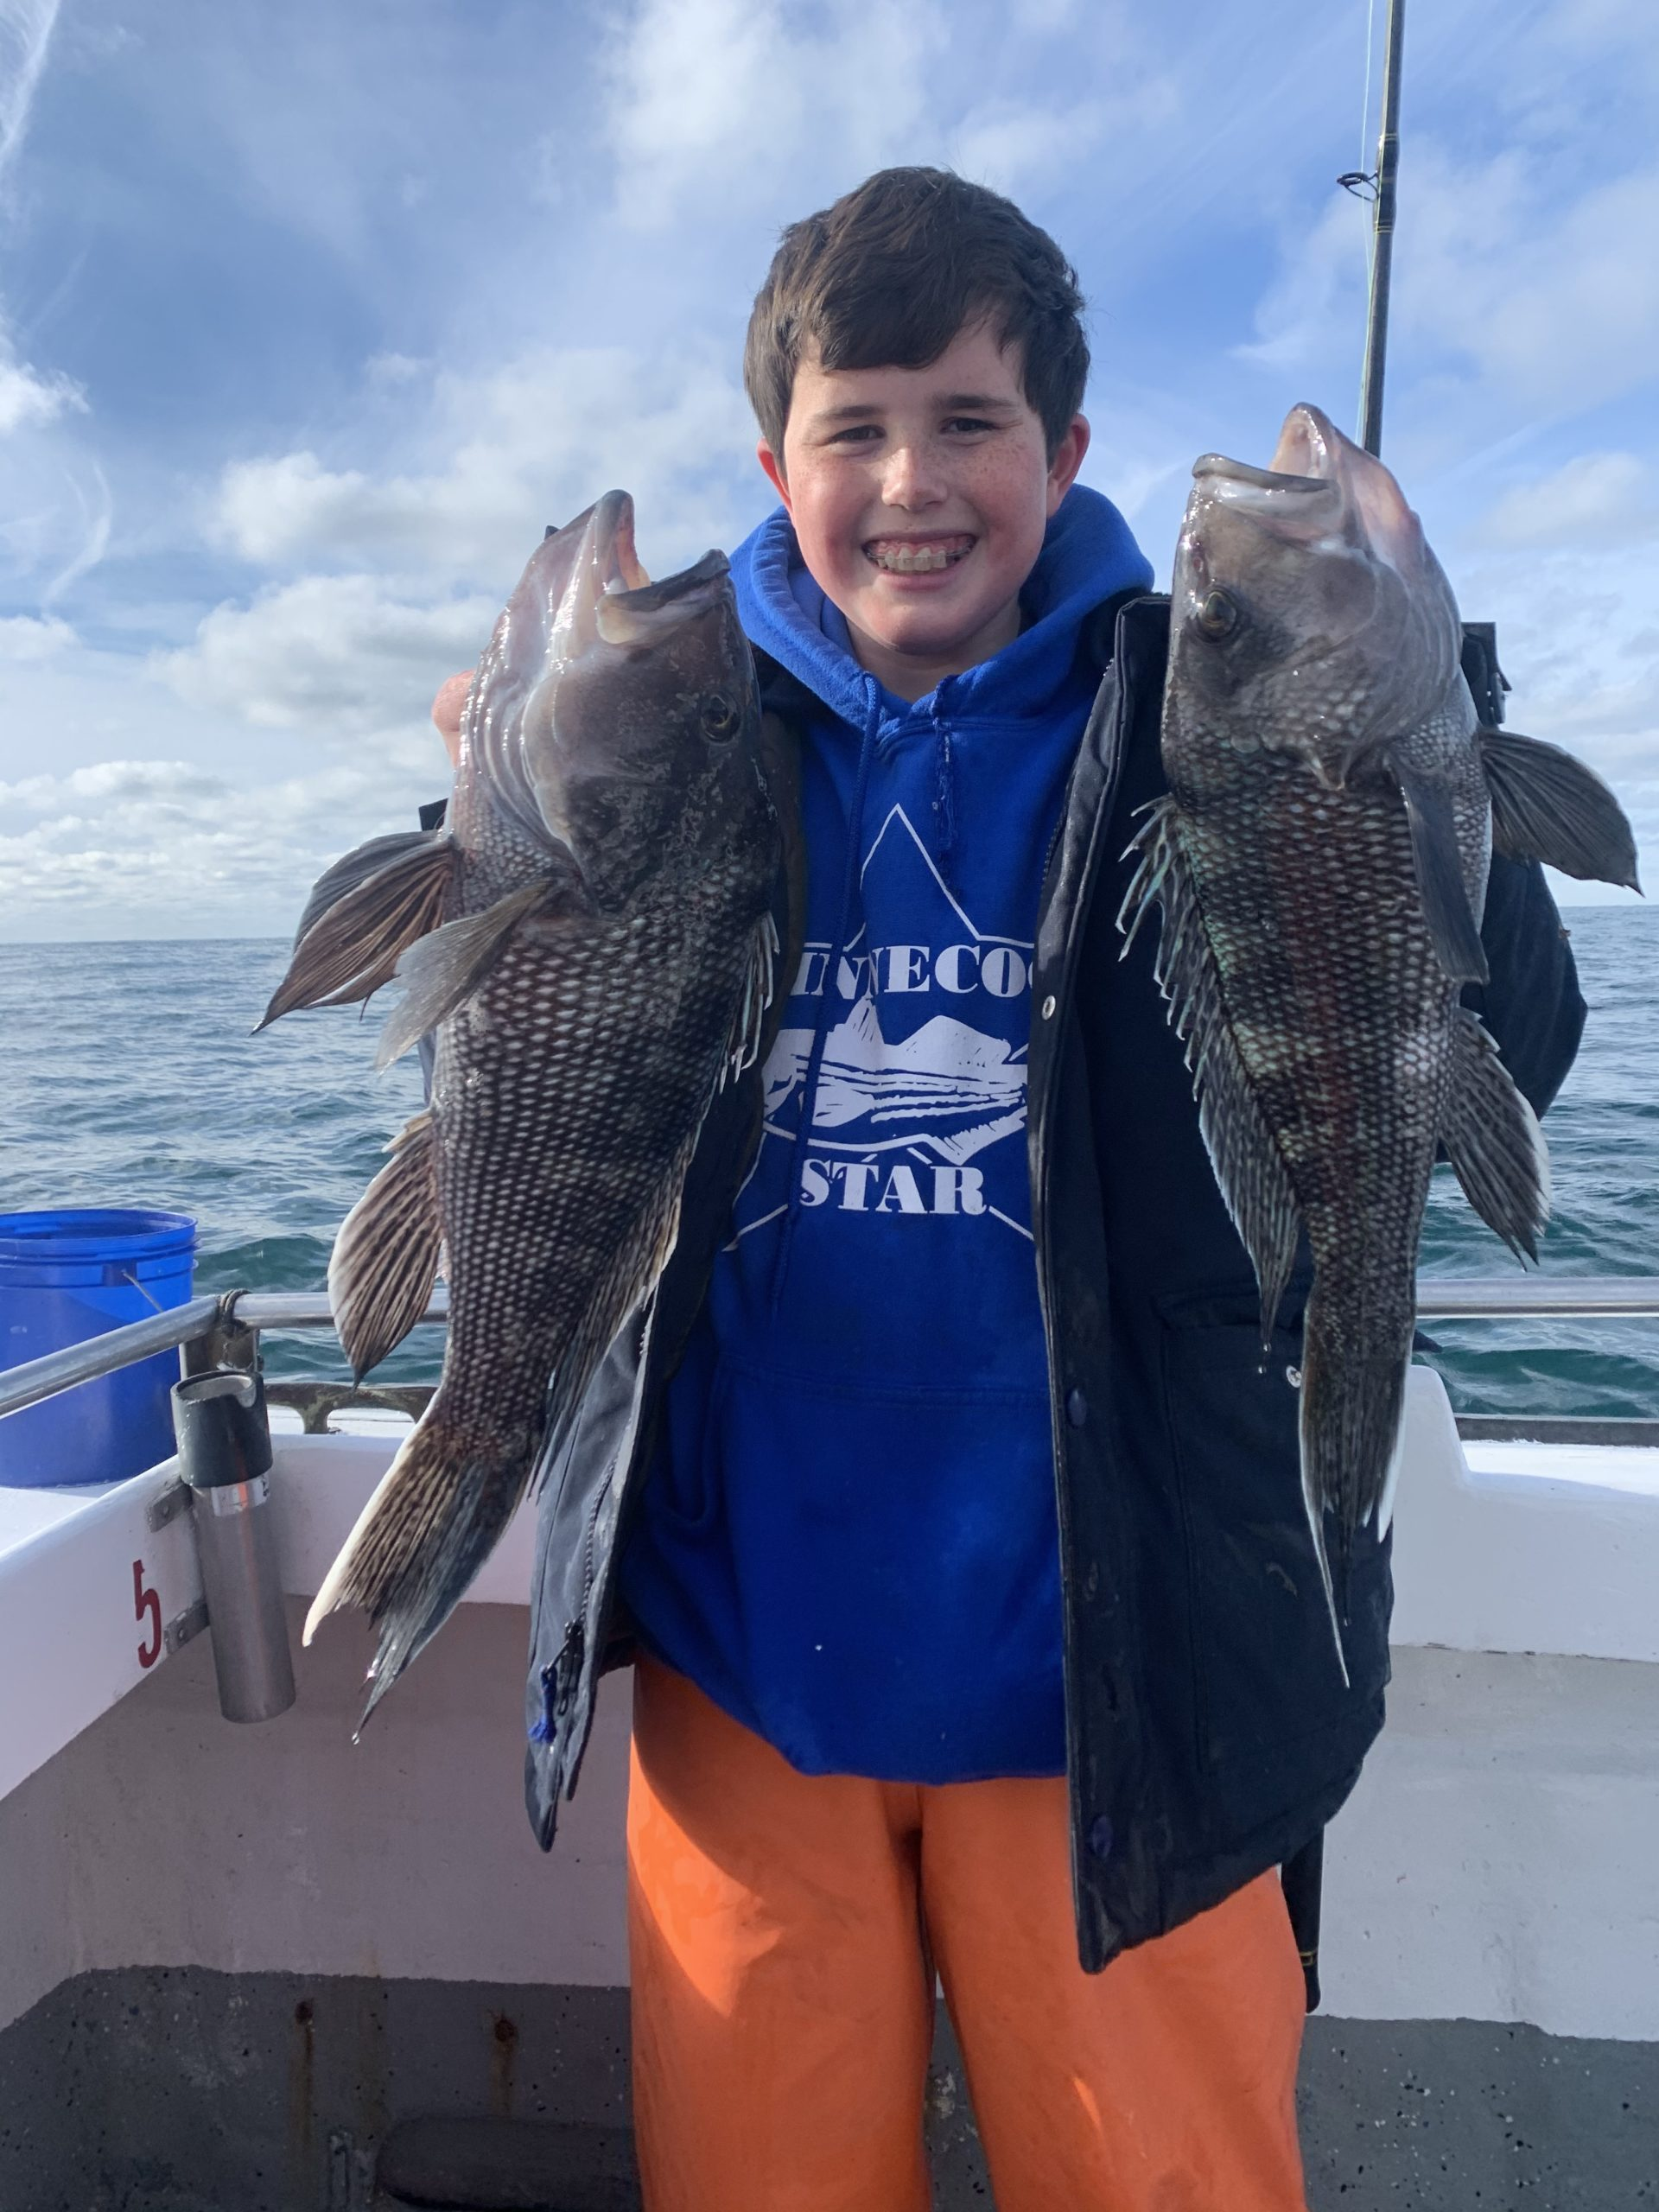 Kevin Kelly decked a couple of big black sea bass while fishing on the Shinnecock Star on Sunday.  Deena Lippman/Shinnecock Star